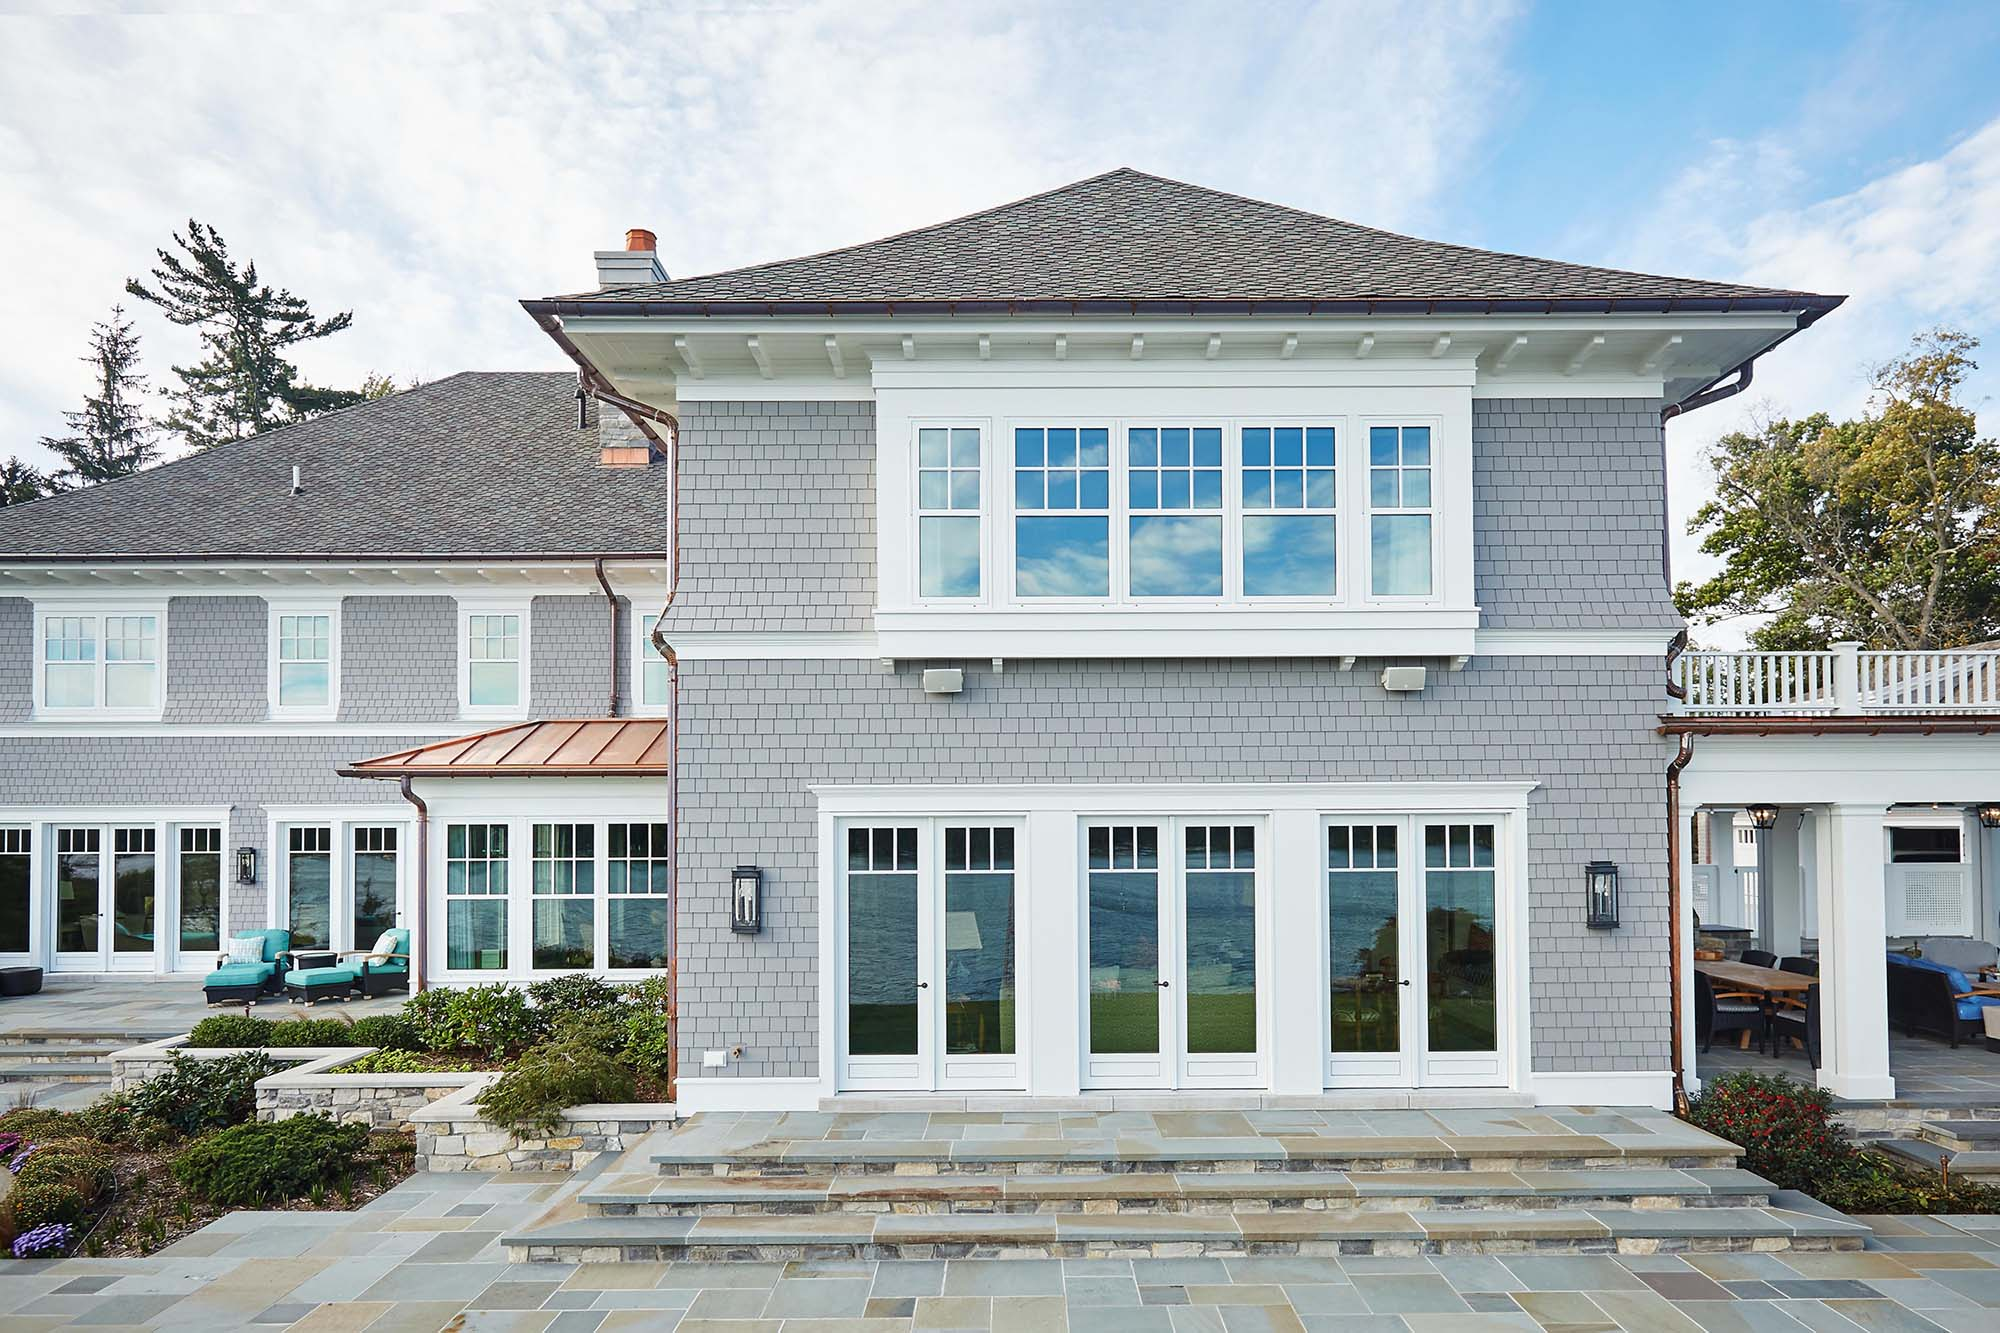 custom luxury home NJ rear view gray shake with white azek copper accent roof and gutters bluestone patio